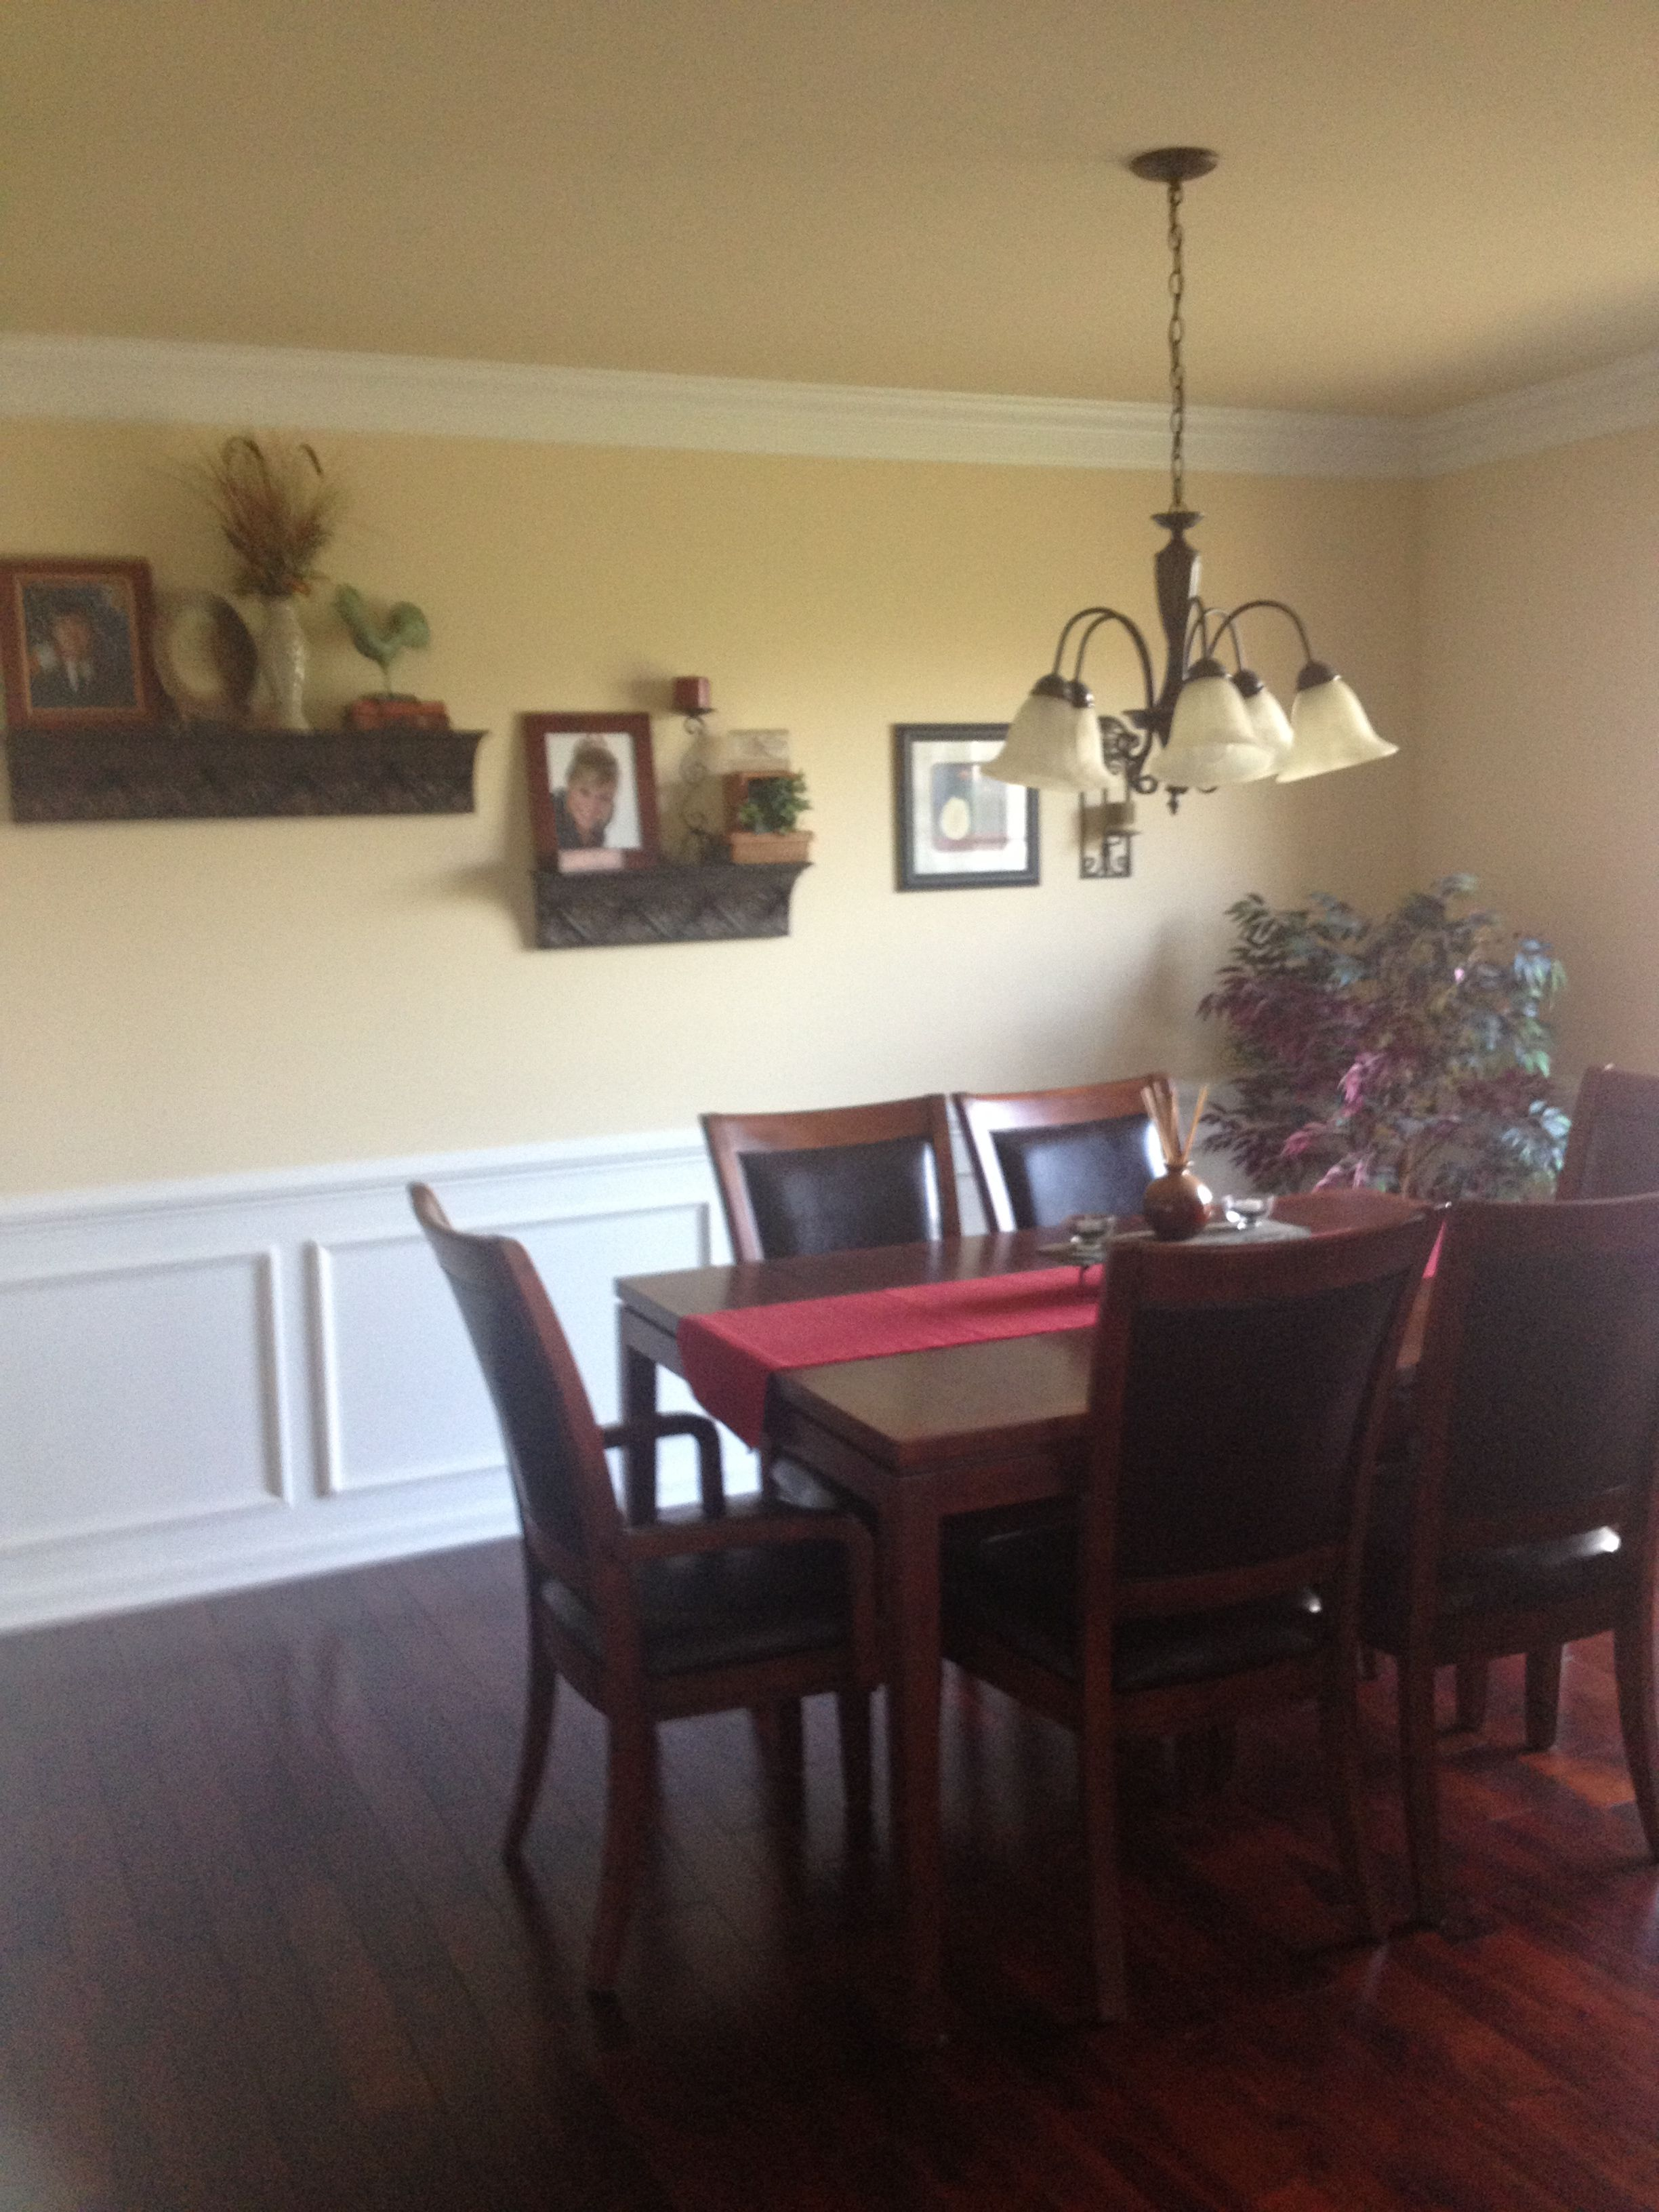 Dining room, paneled wall- love the wall color and paneling